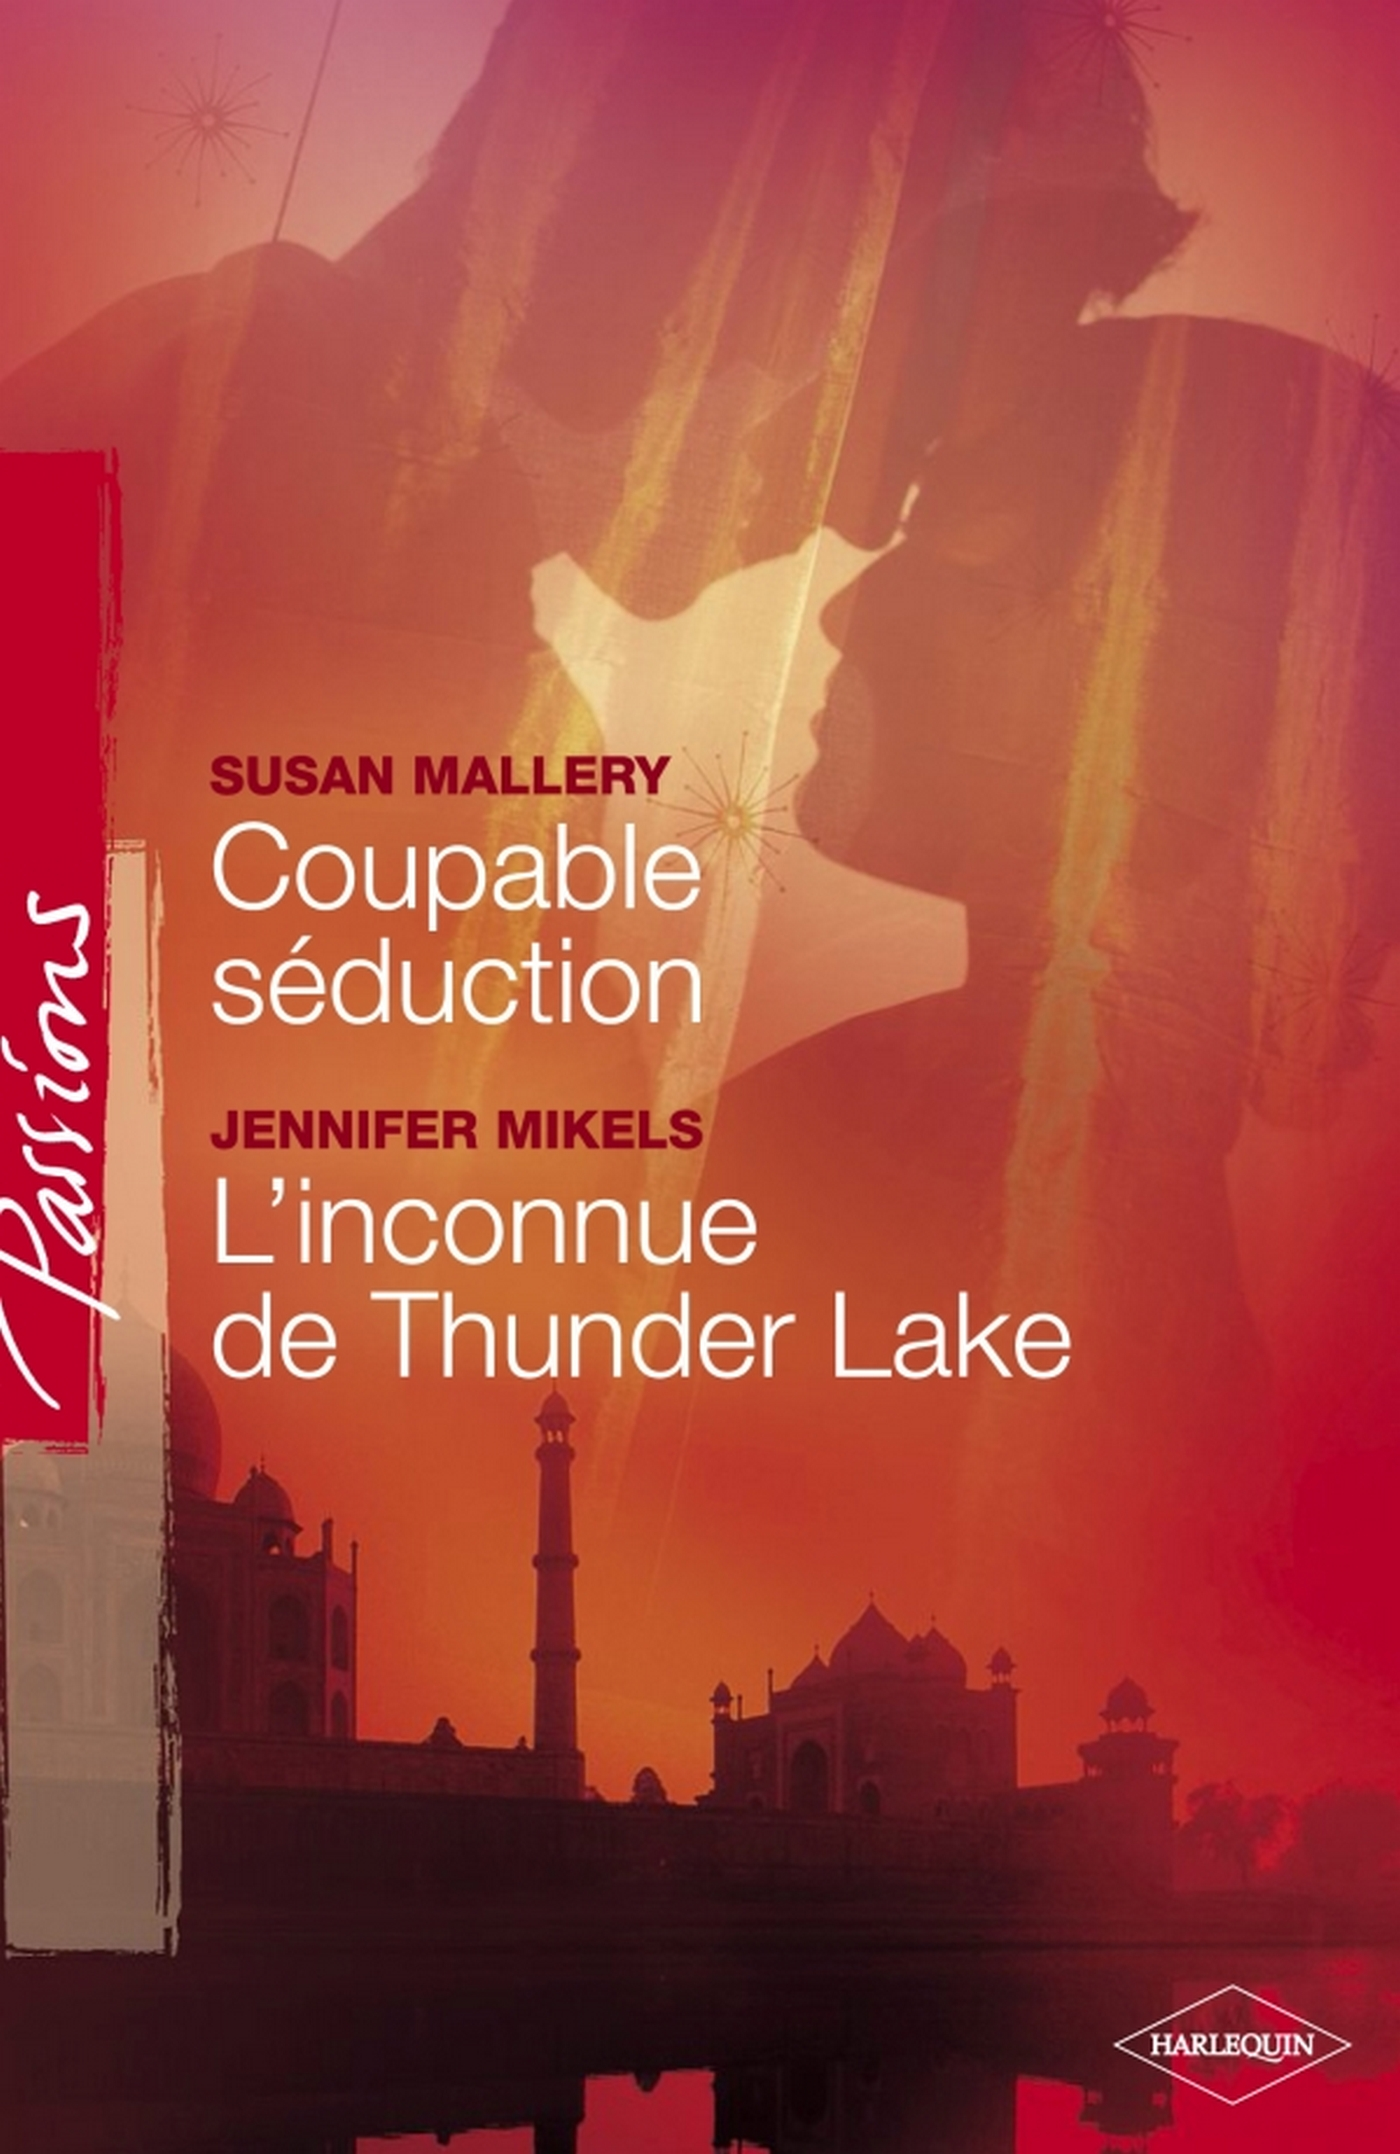 Coupable séduction - L'inconnue de Thunder Lake (Harlequin Passions)